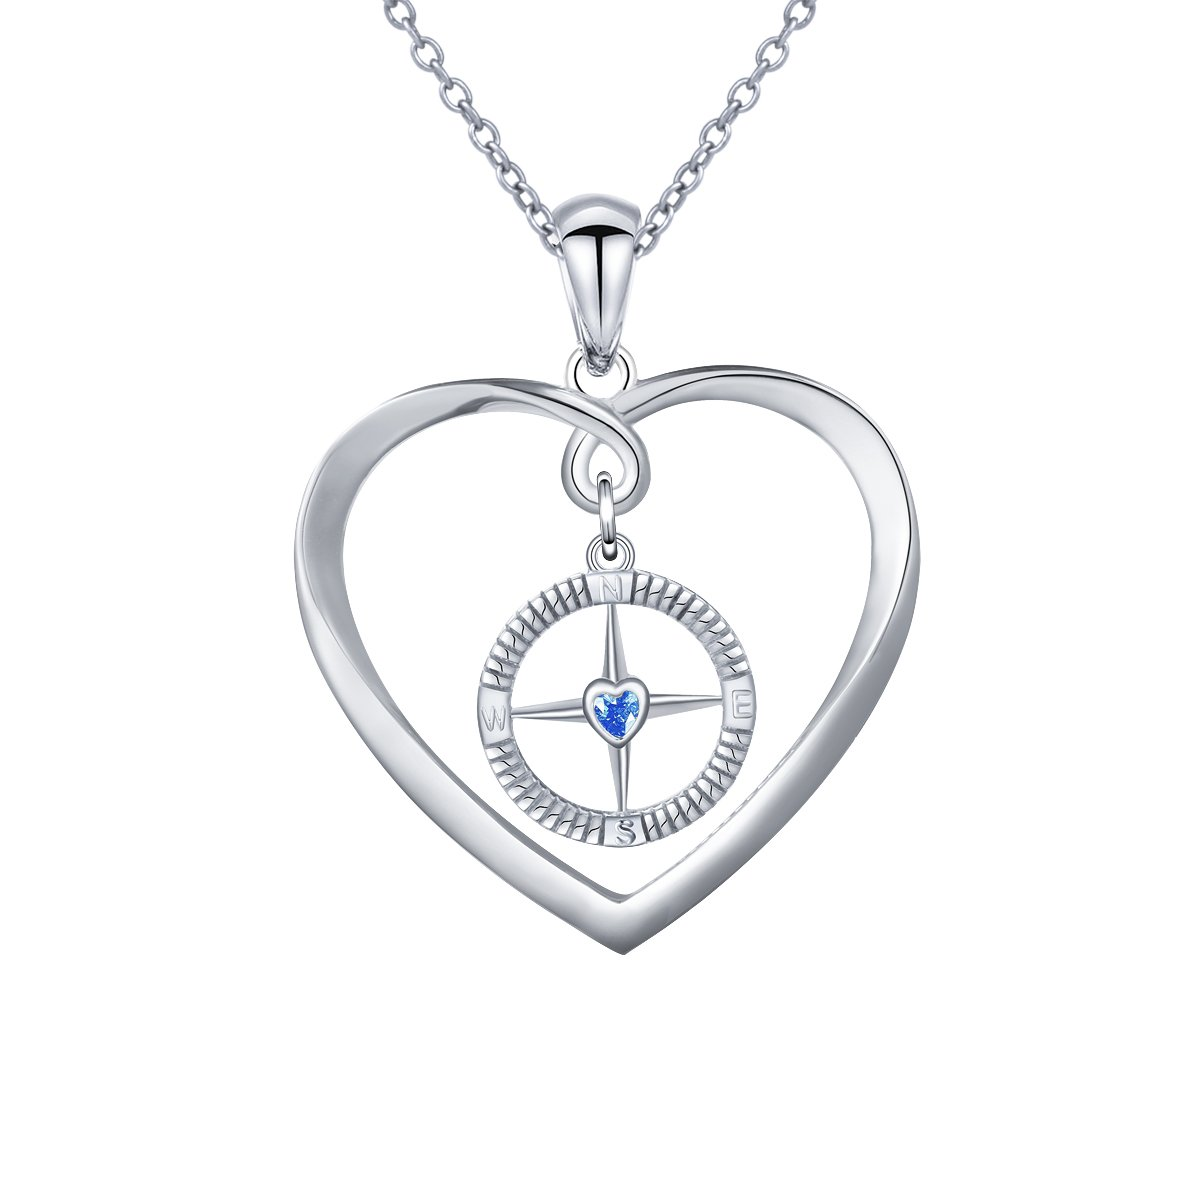 DAOCHONG Sterling Silver Compass Necklace on Enjoy The Journey, Pendant for Travel, Long Distance, Graduation Gift, 18''